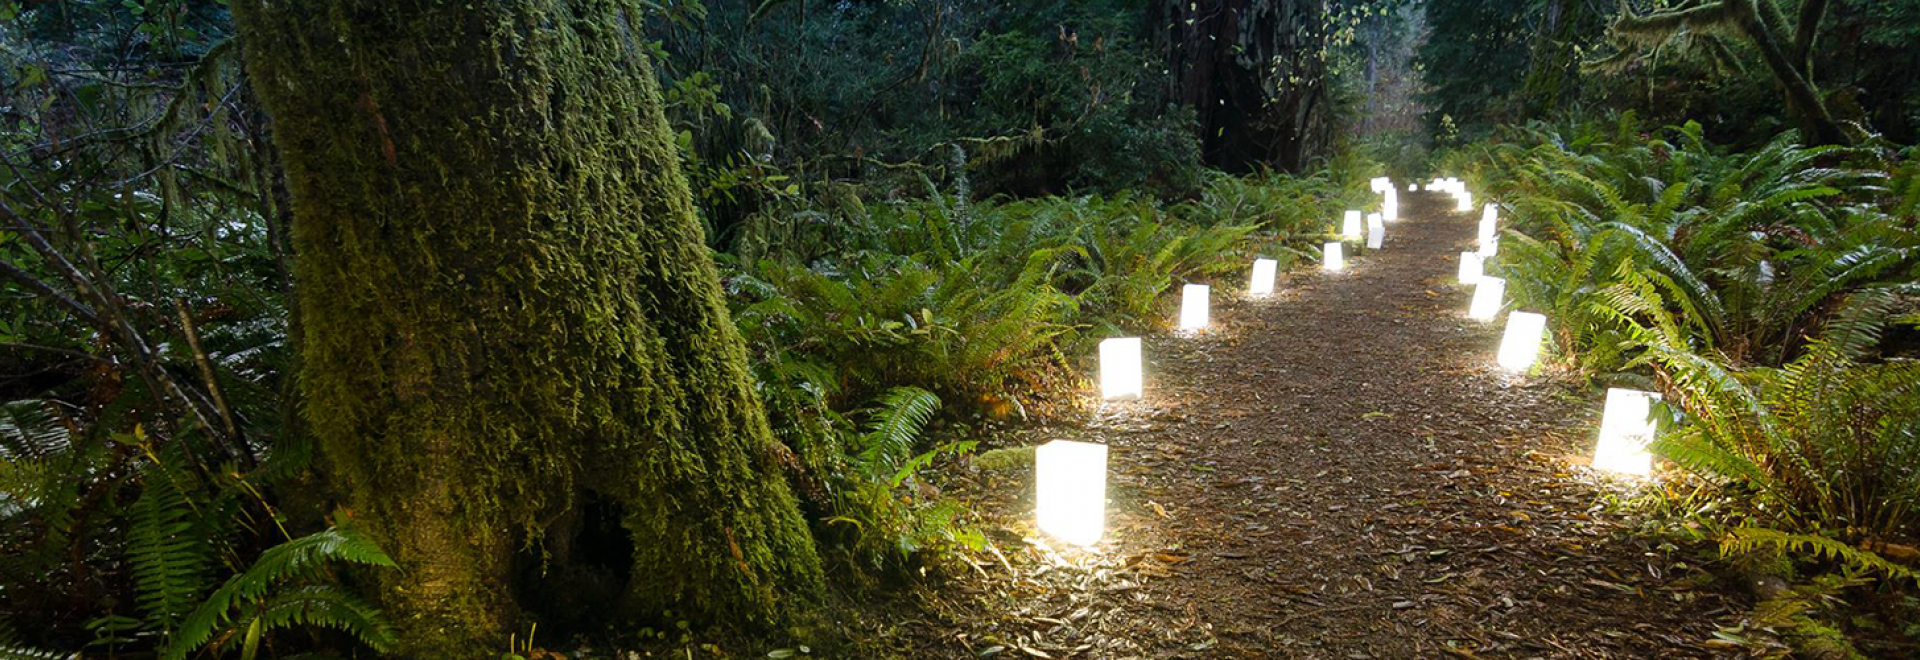 Luminaries lighting the trail during the Candlelight Walk at Prairie Creek Redwoods